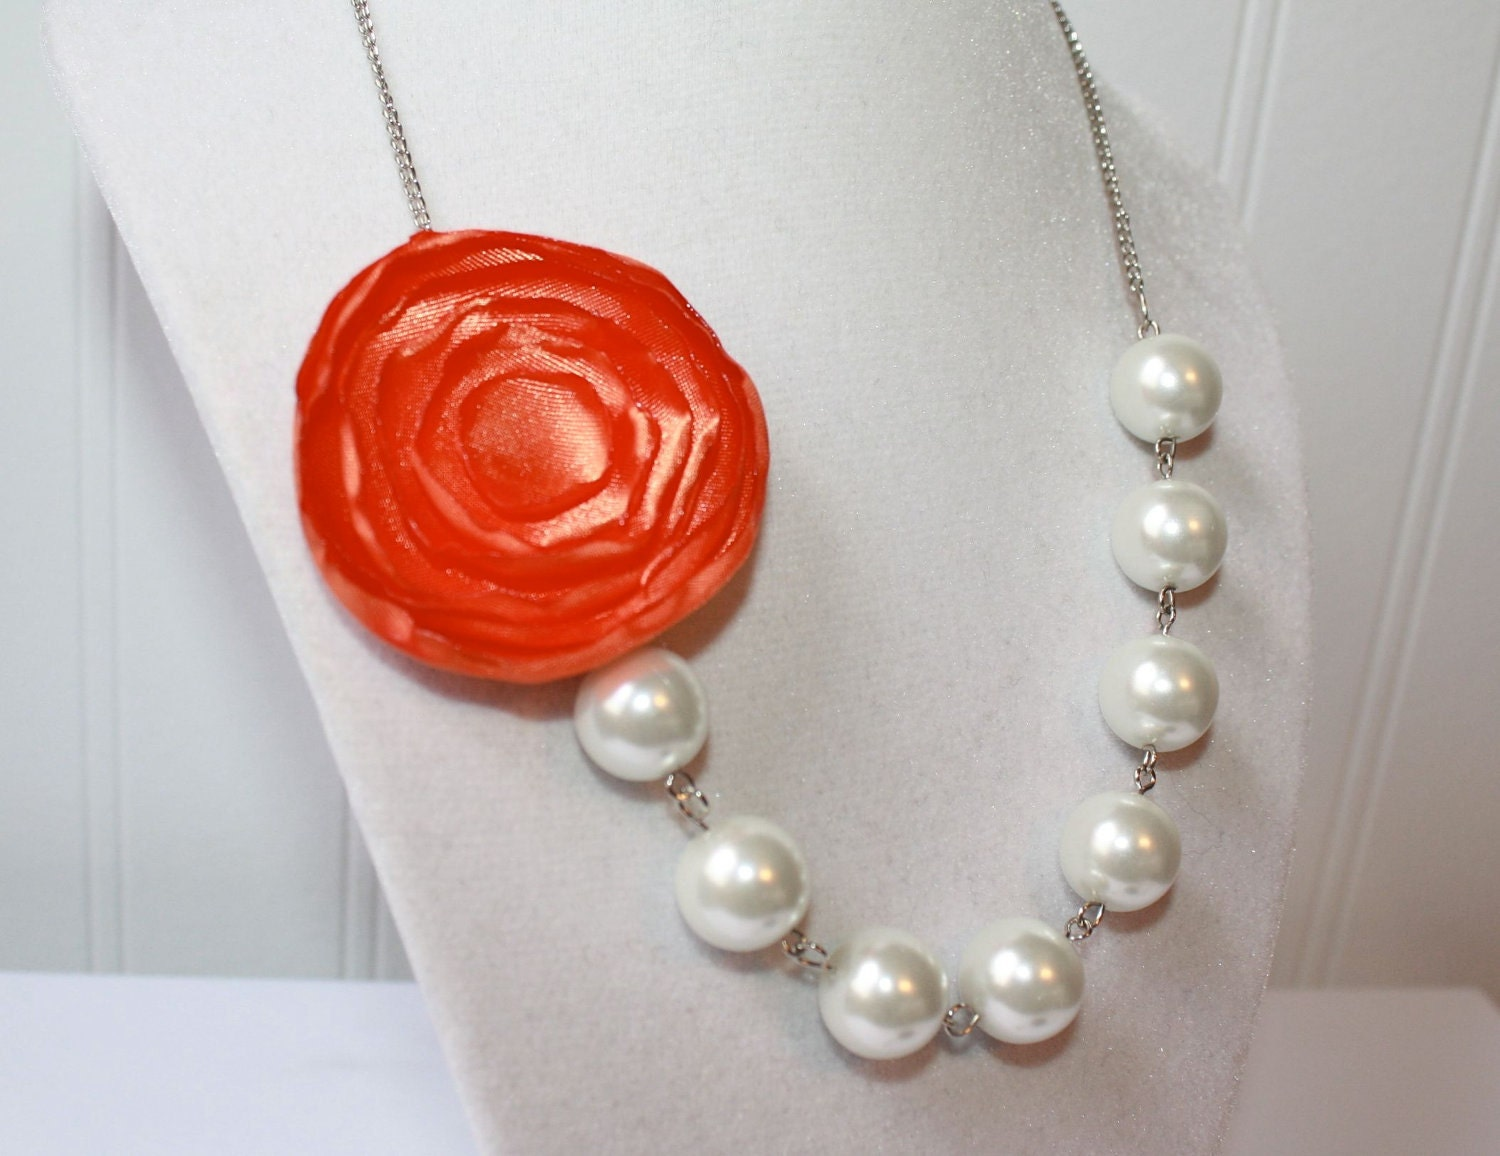 Orange Flower and White Pearls Necklace or Pick Your Color